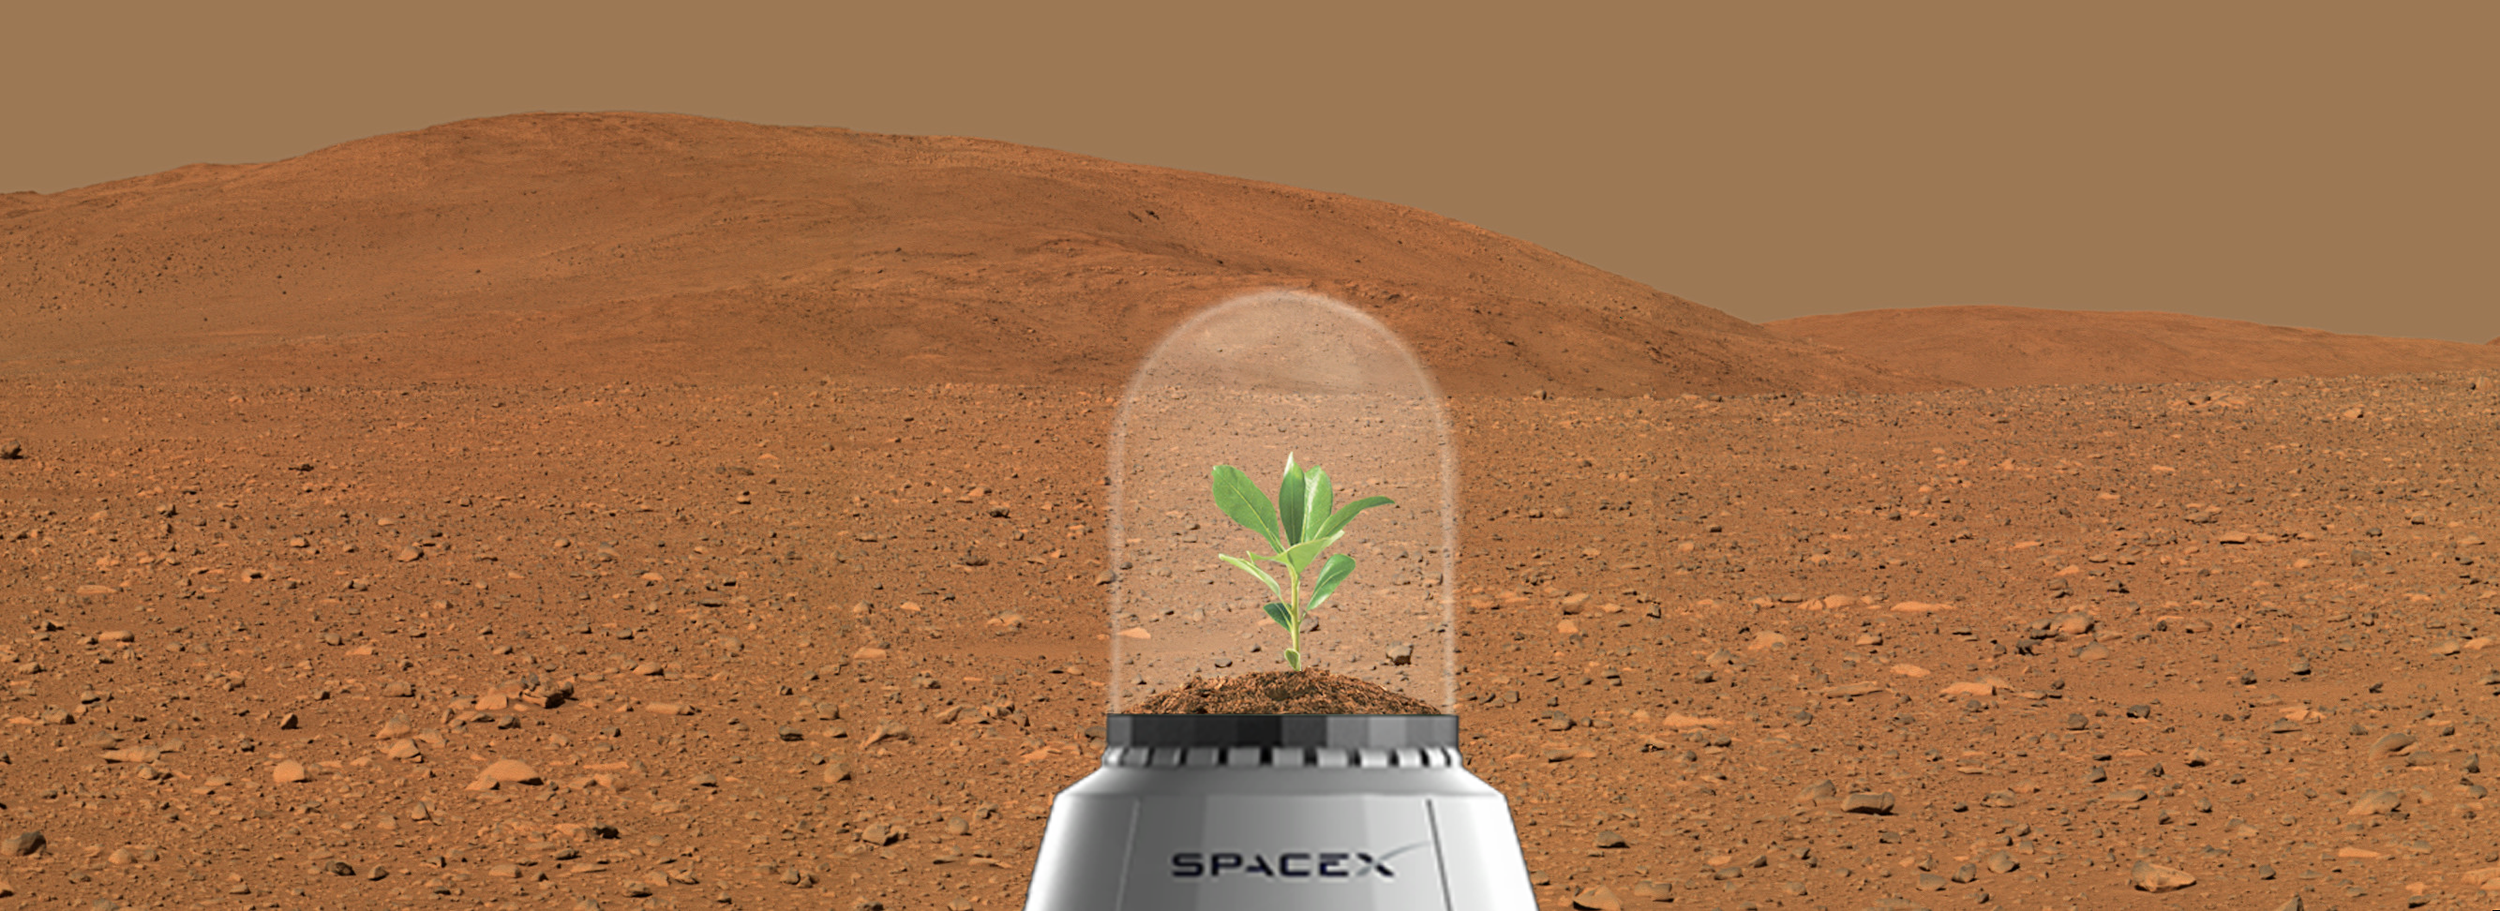 In 2001, Elon Musk conceptualized Mars Oasis, a project to land a miniature experimental greenhouse and grow plants on Mars